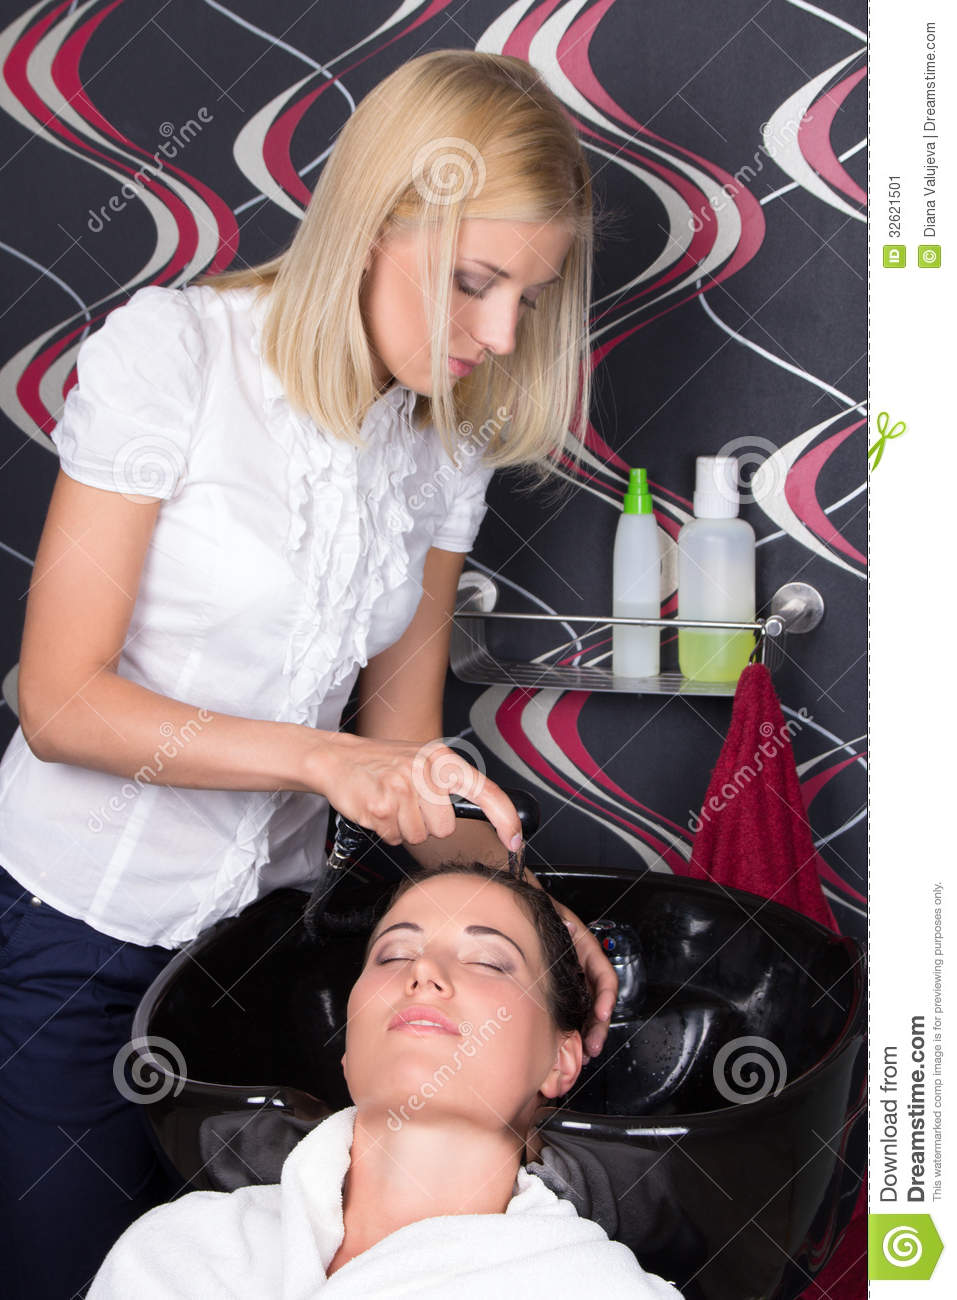 Woman washing hair in sink the image for Wash hair salon